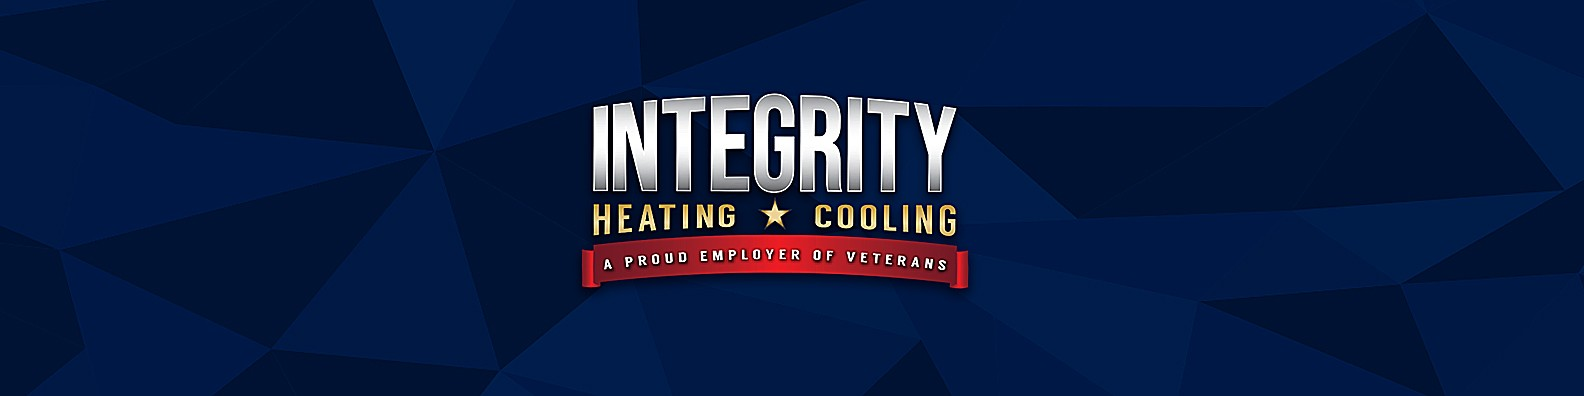 Integrity Heating Cooling Inc Linkedin